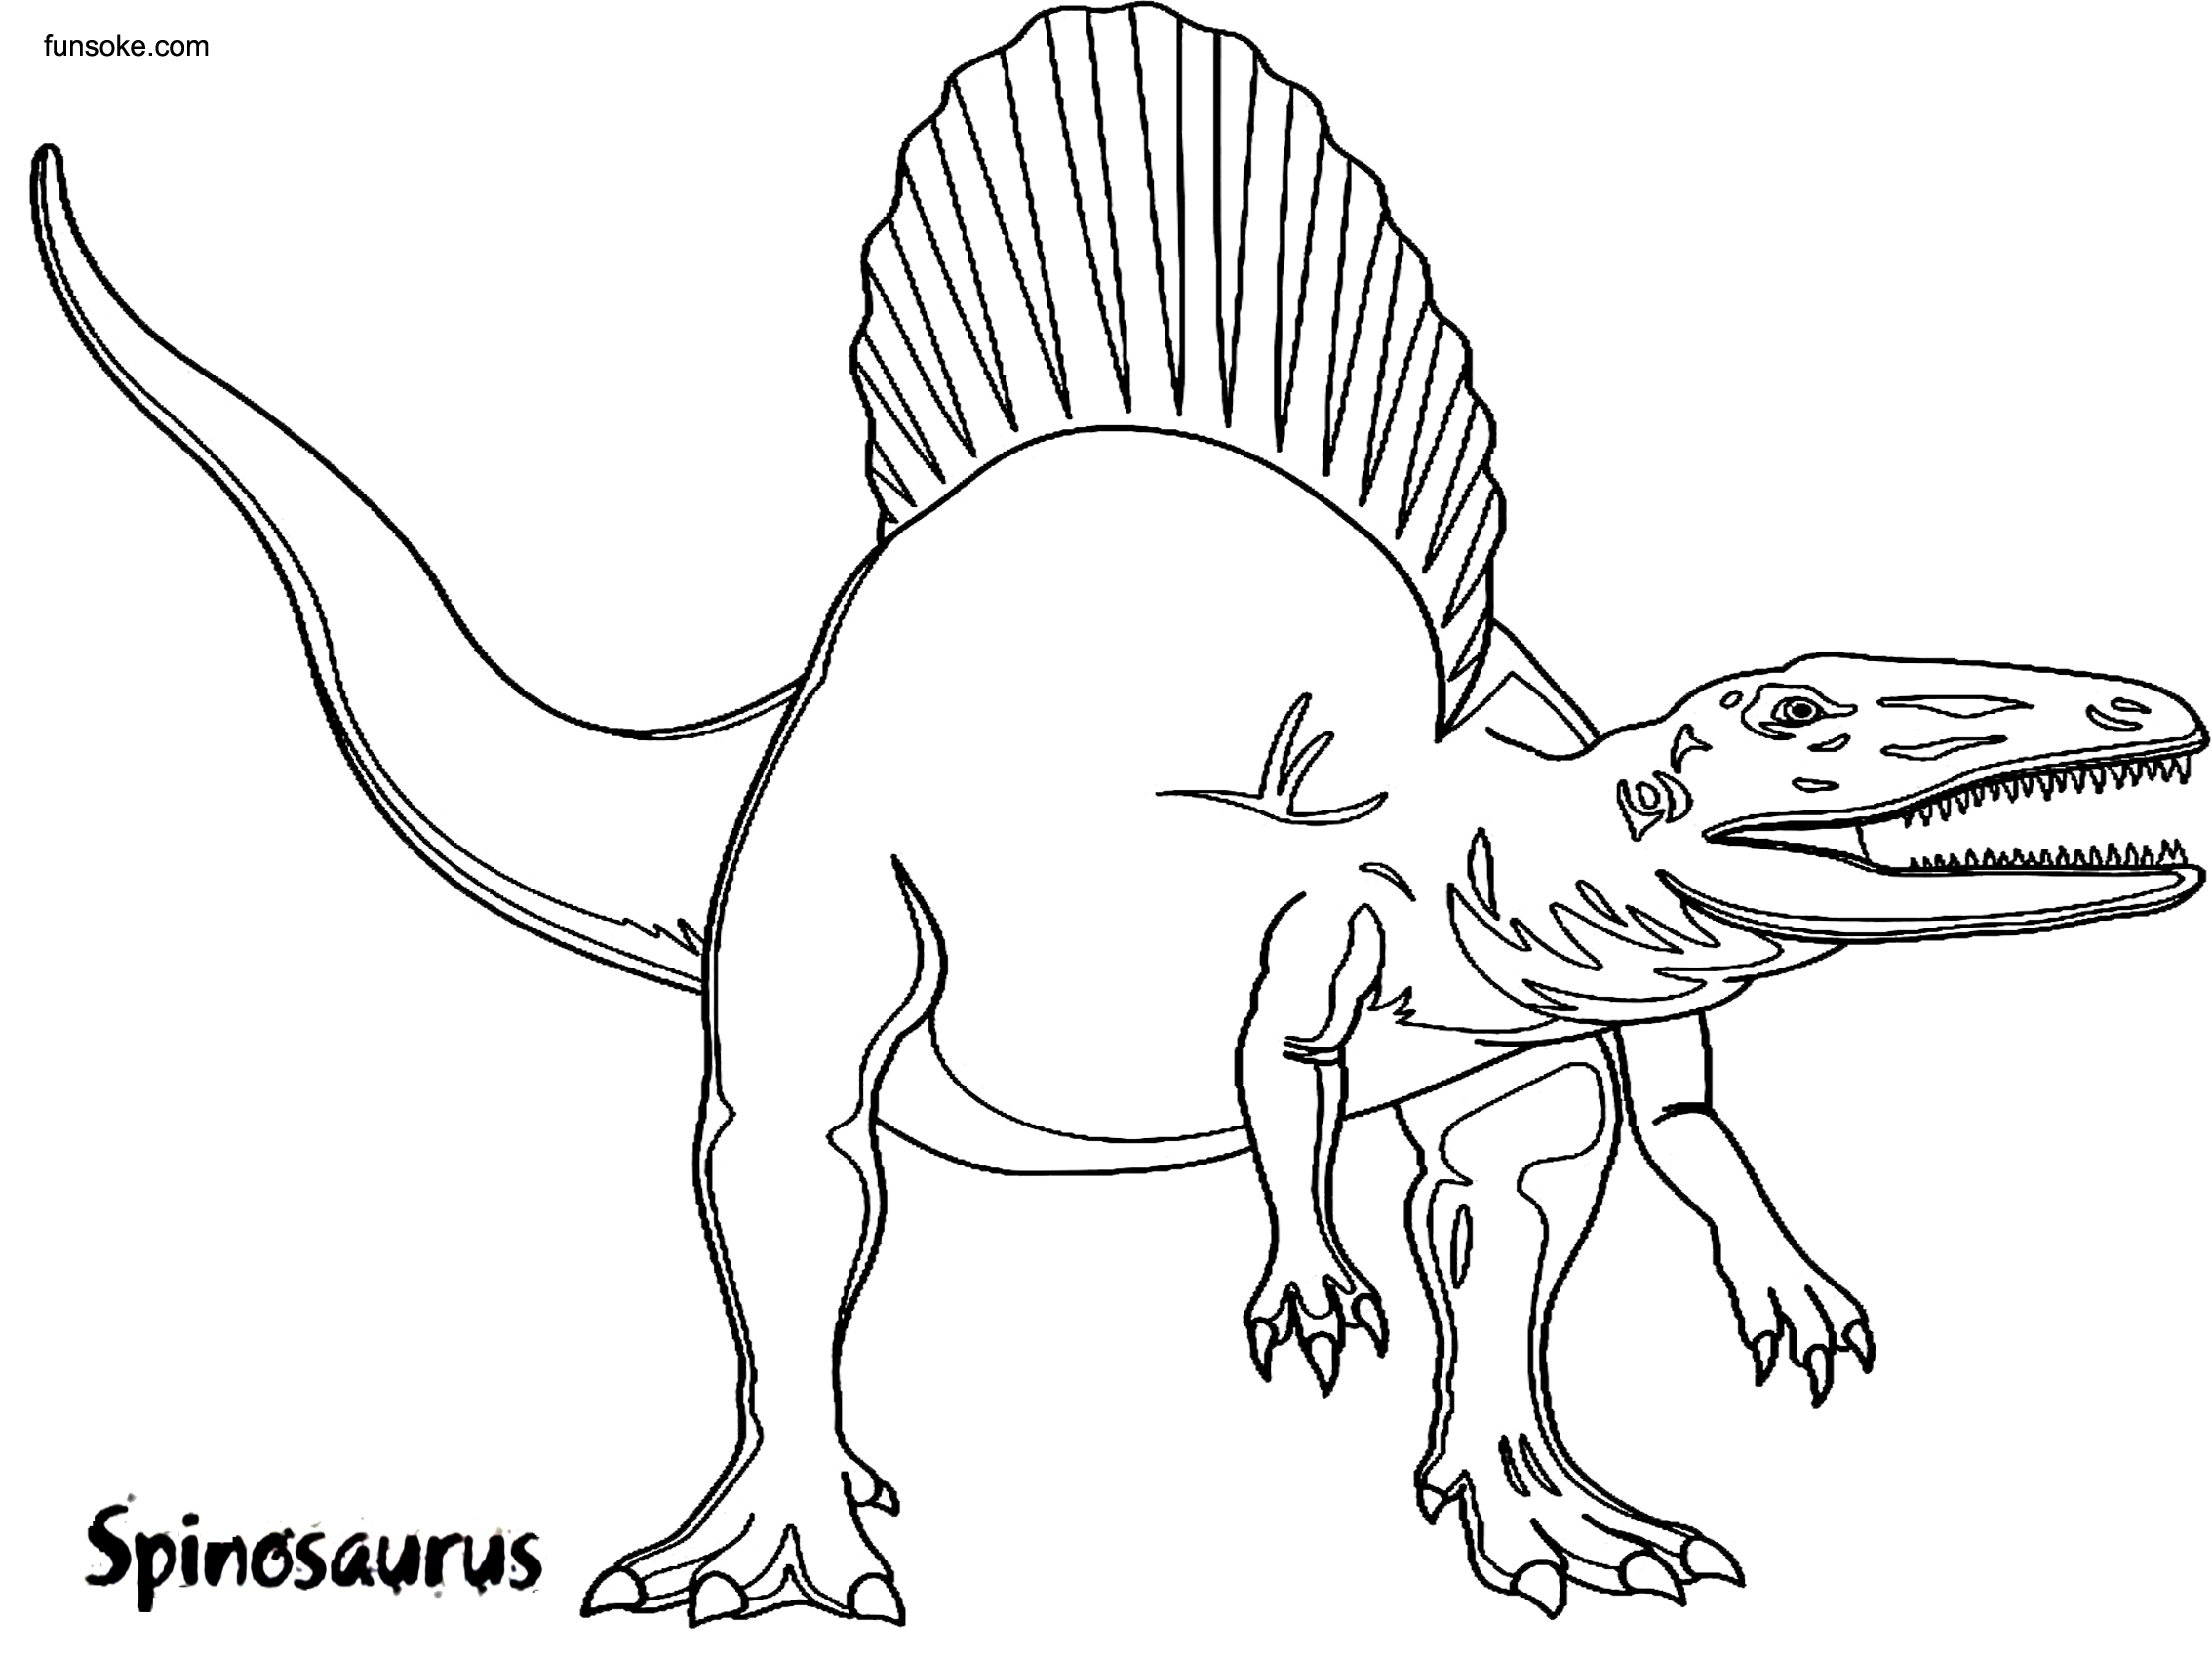 coloring dinosaur free printables free dinosaur coloring pages printable activities dinosaur coloring printables free